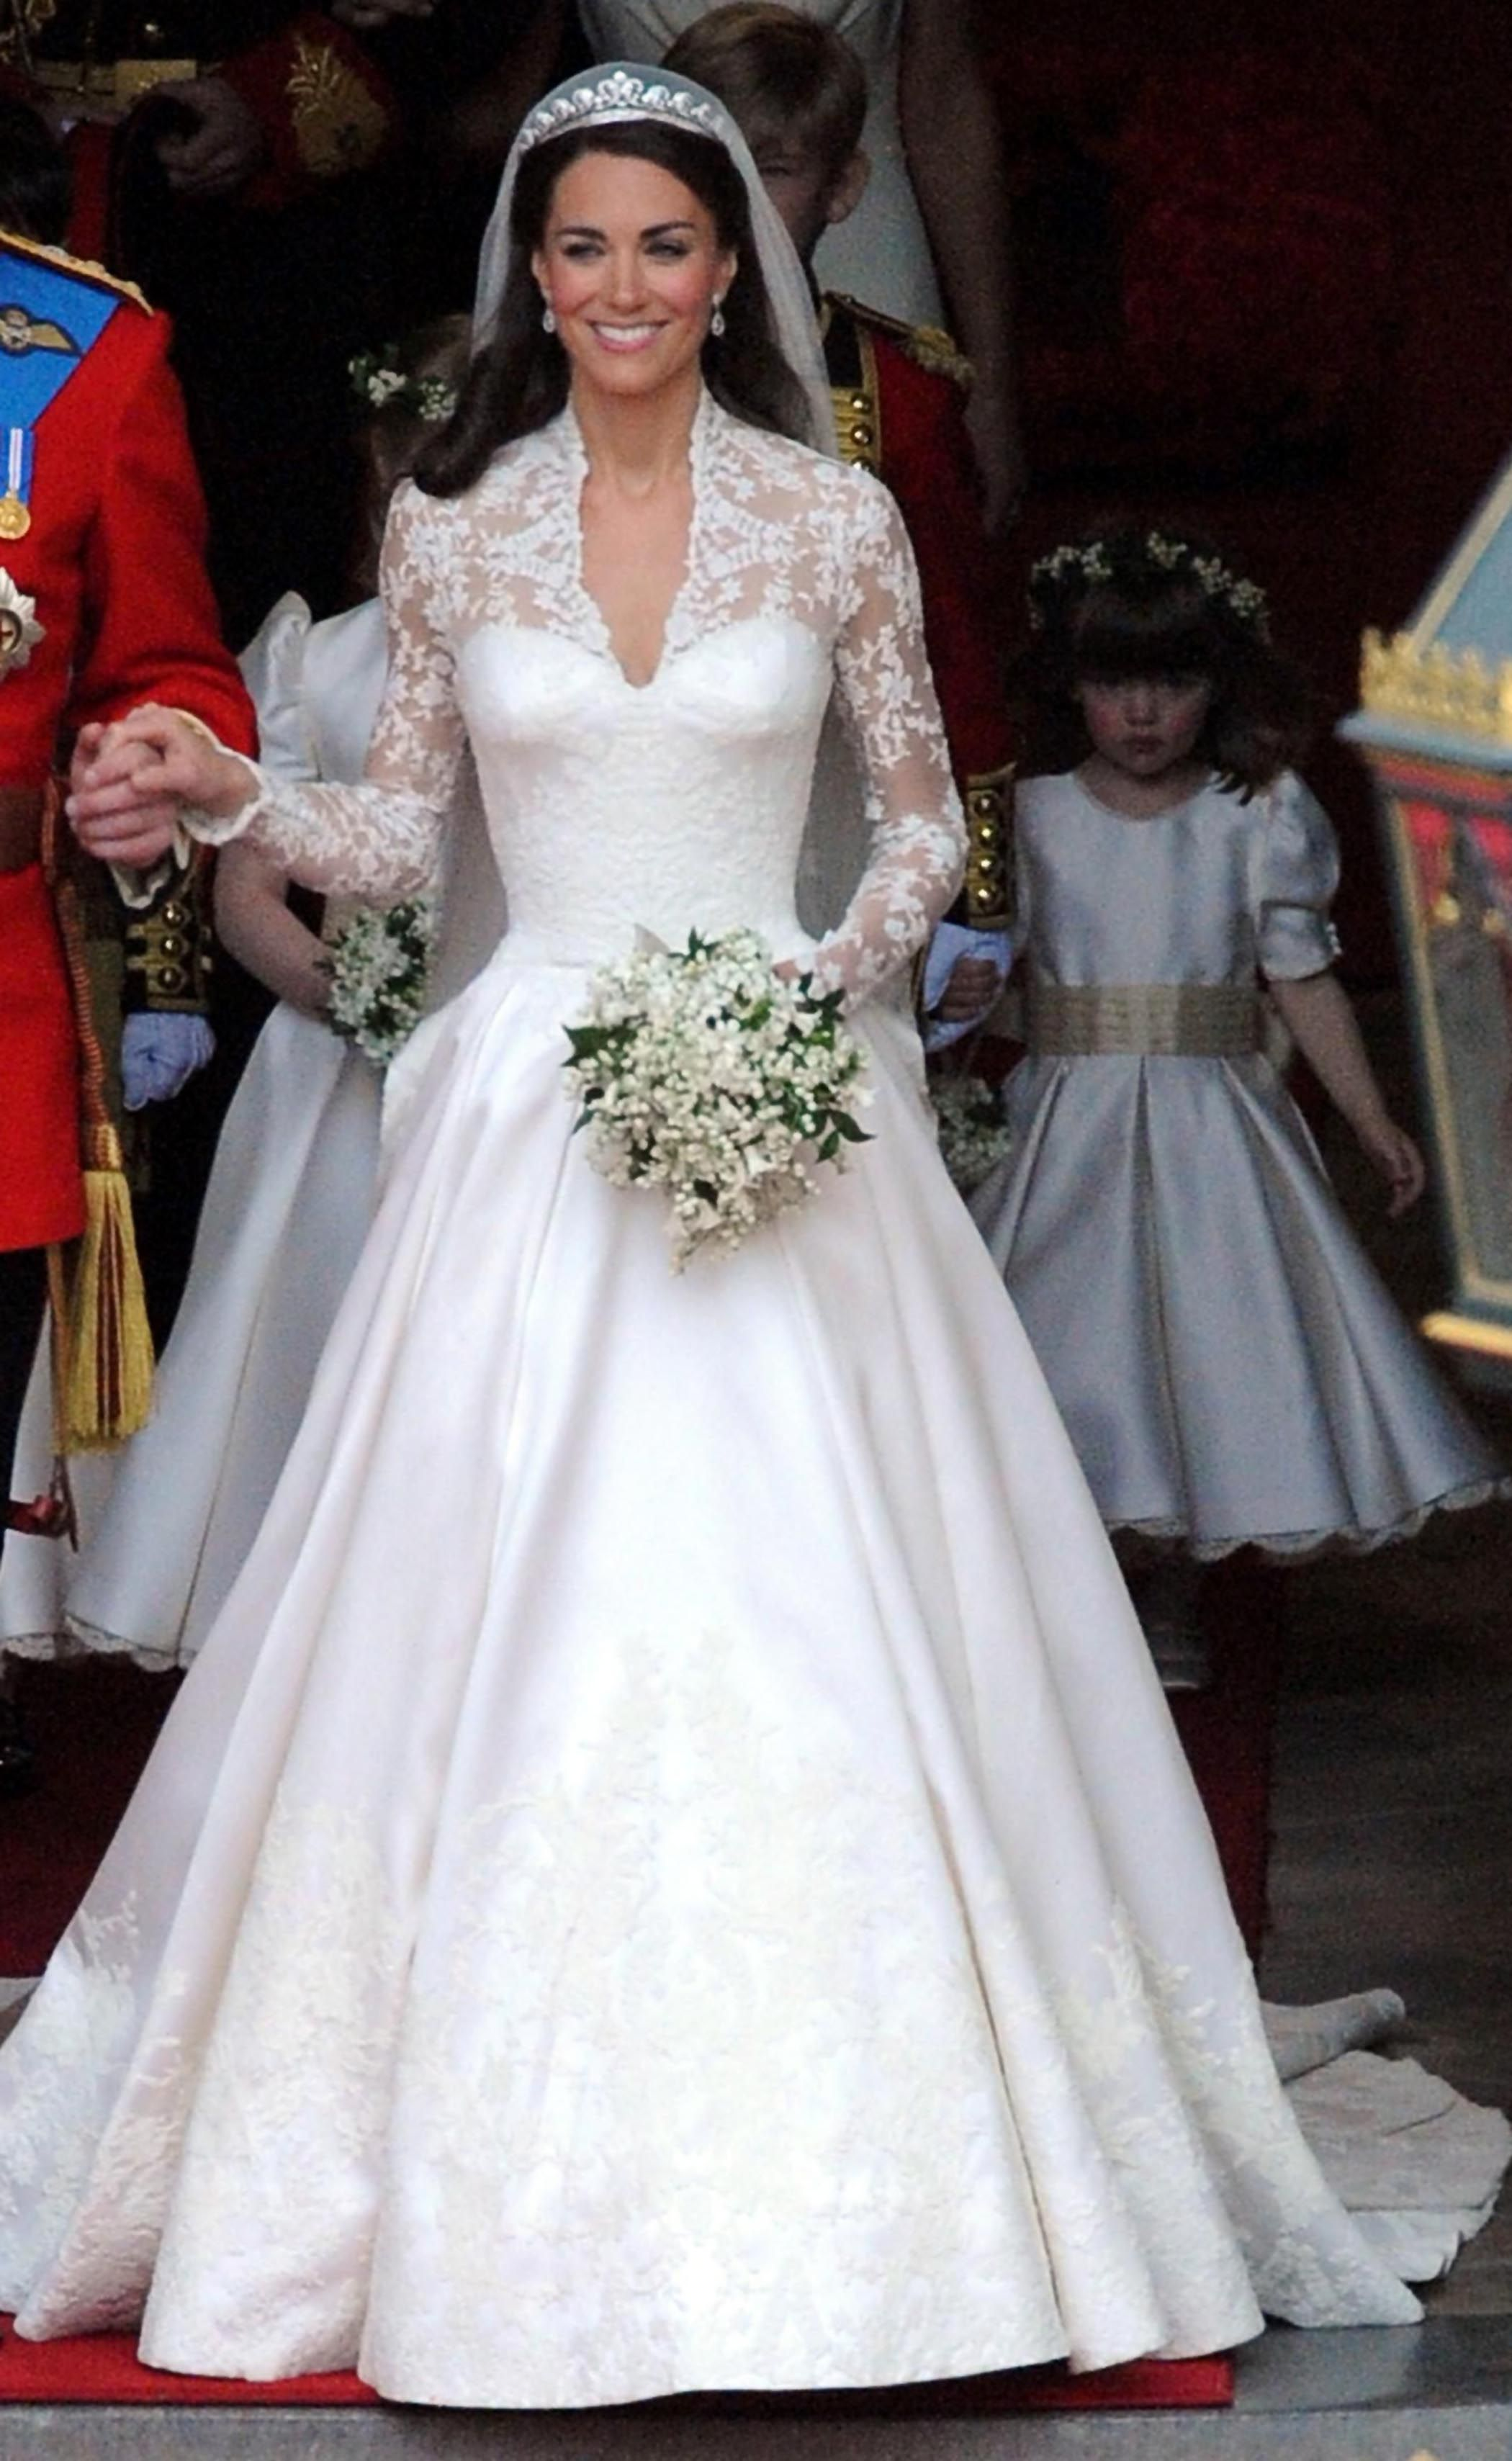 kate middleton wedding dress - Google Search